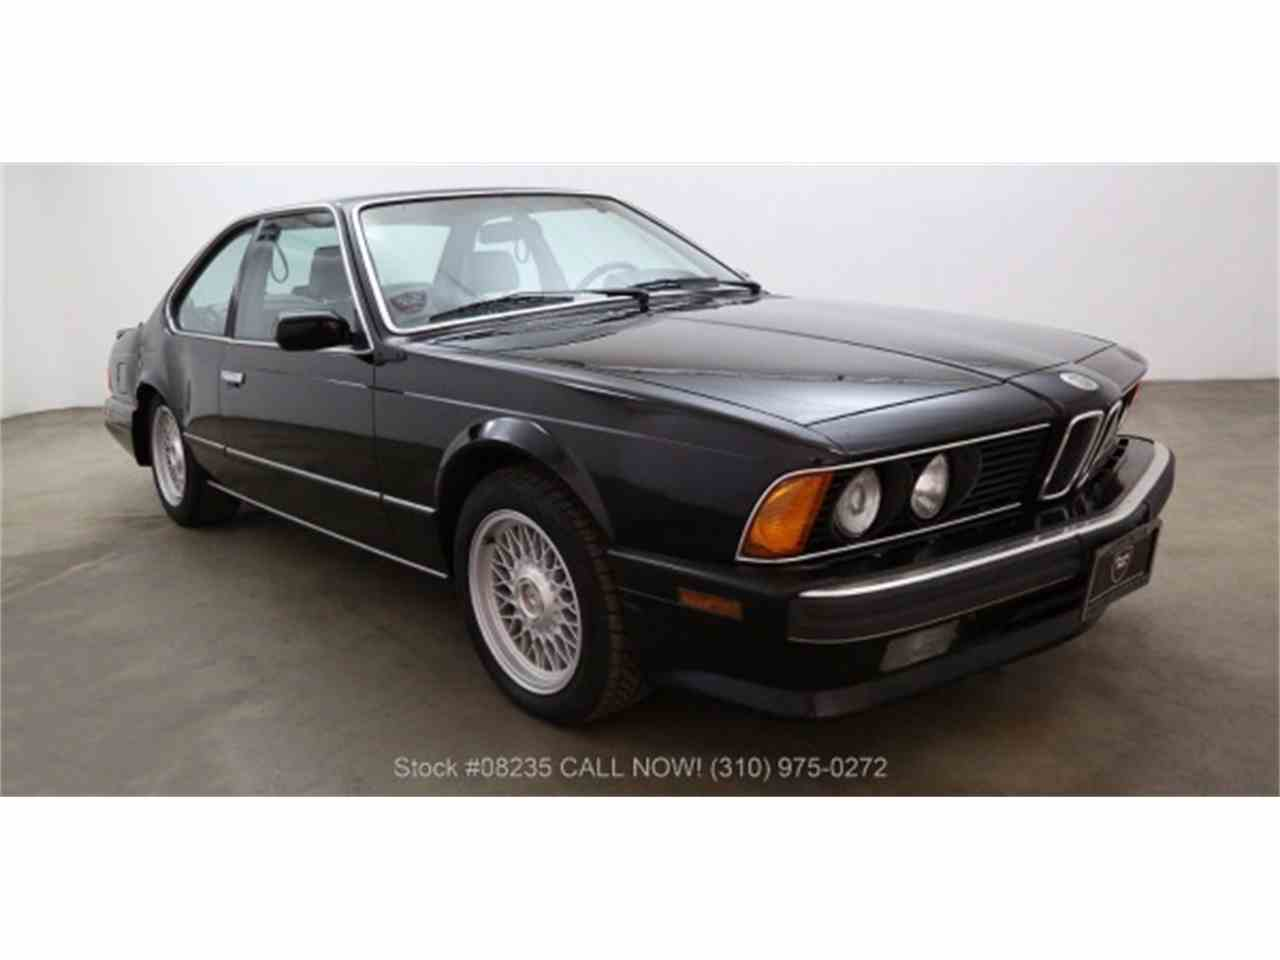 BMW M For Sale ClassicCarscom CC - 1988 bmw m6 for sale